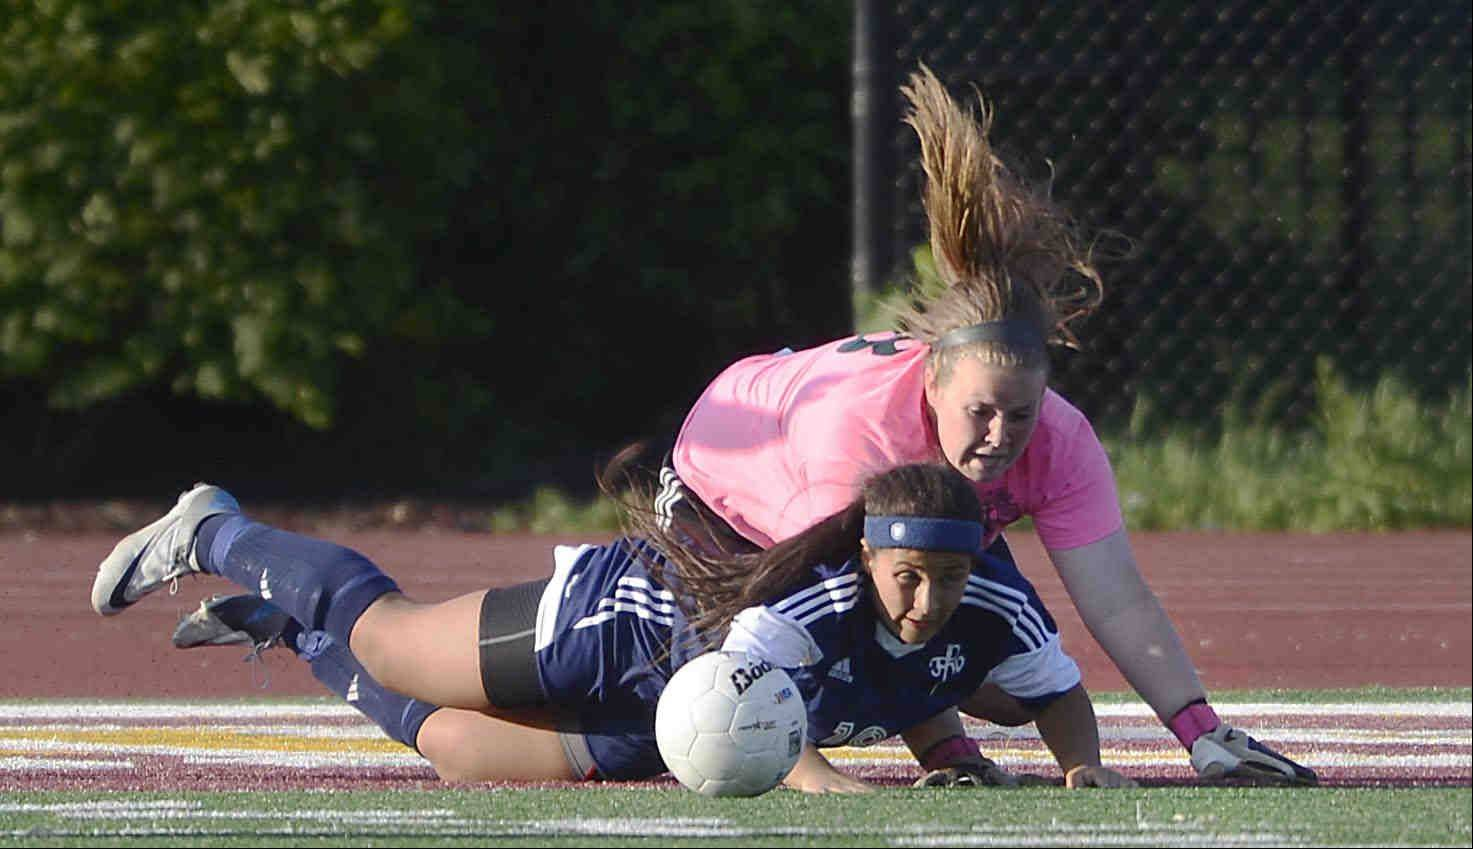 St. Edward goalkeeper Paige Dykstra and Francis W. Parker's Julia Turner fall to the turf Tuesday in the supersectional playoff at Concordia University in River Forest.